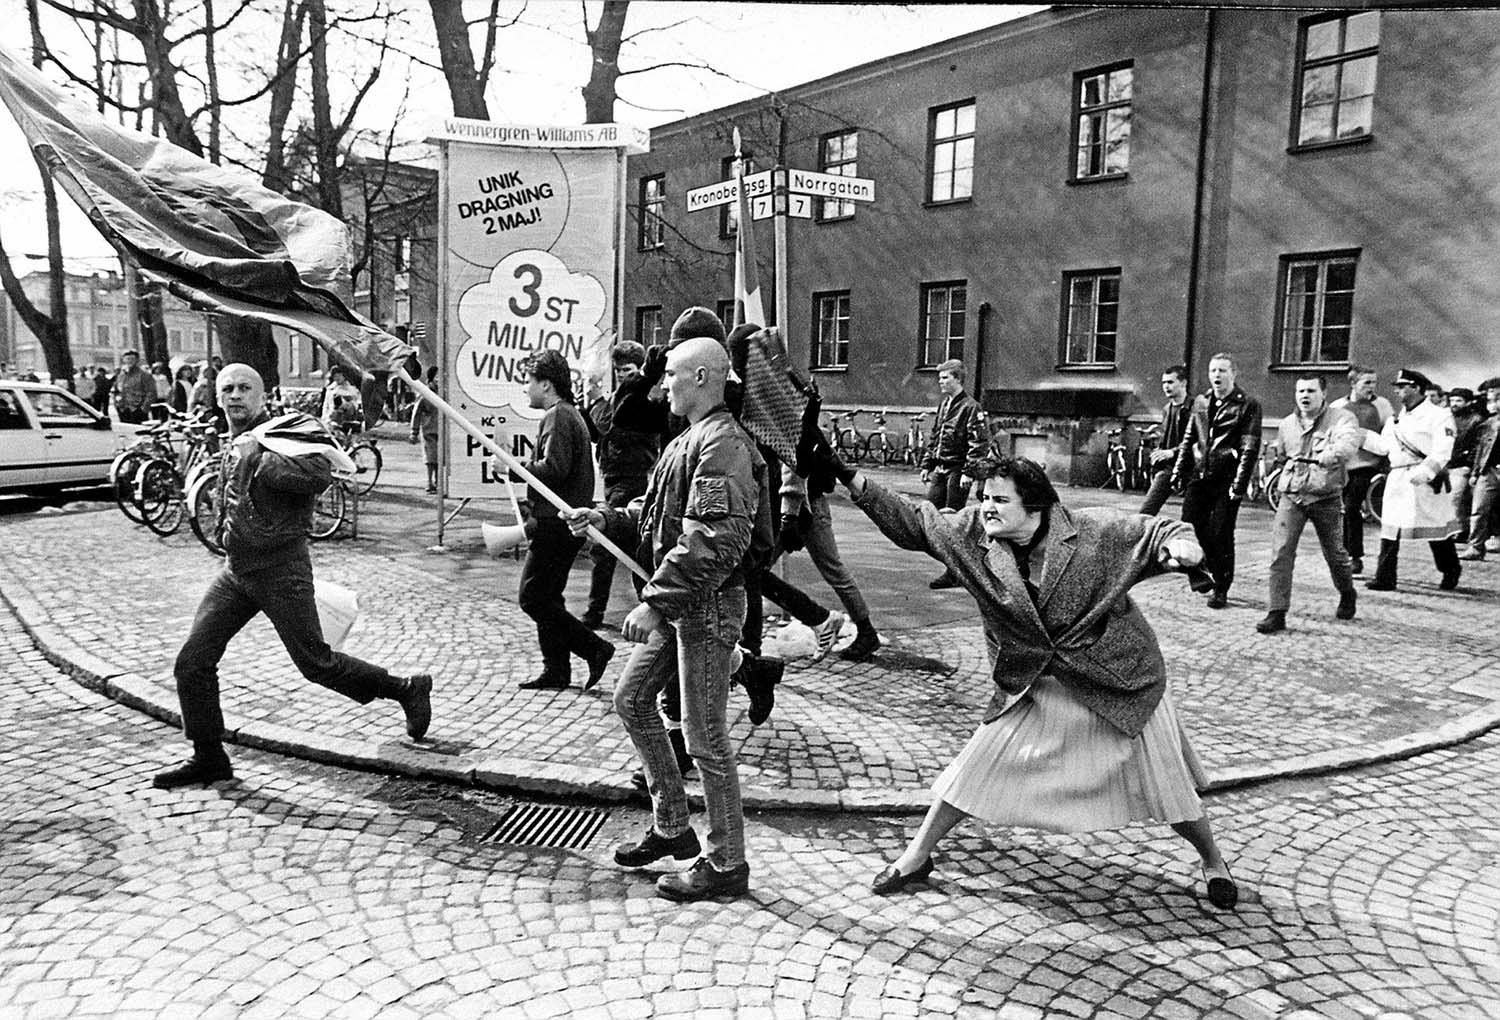 The Jewish Danielsson, whose mother survived Auschwitz, struck the skinhead during a march in the Swedish town of Växjö, 1985.